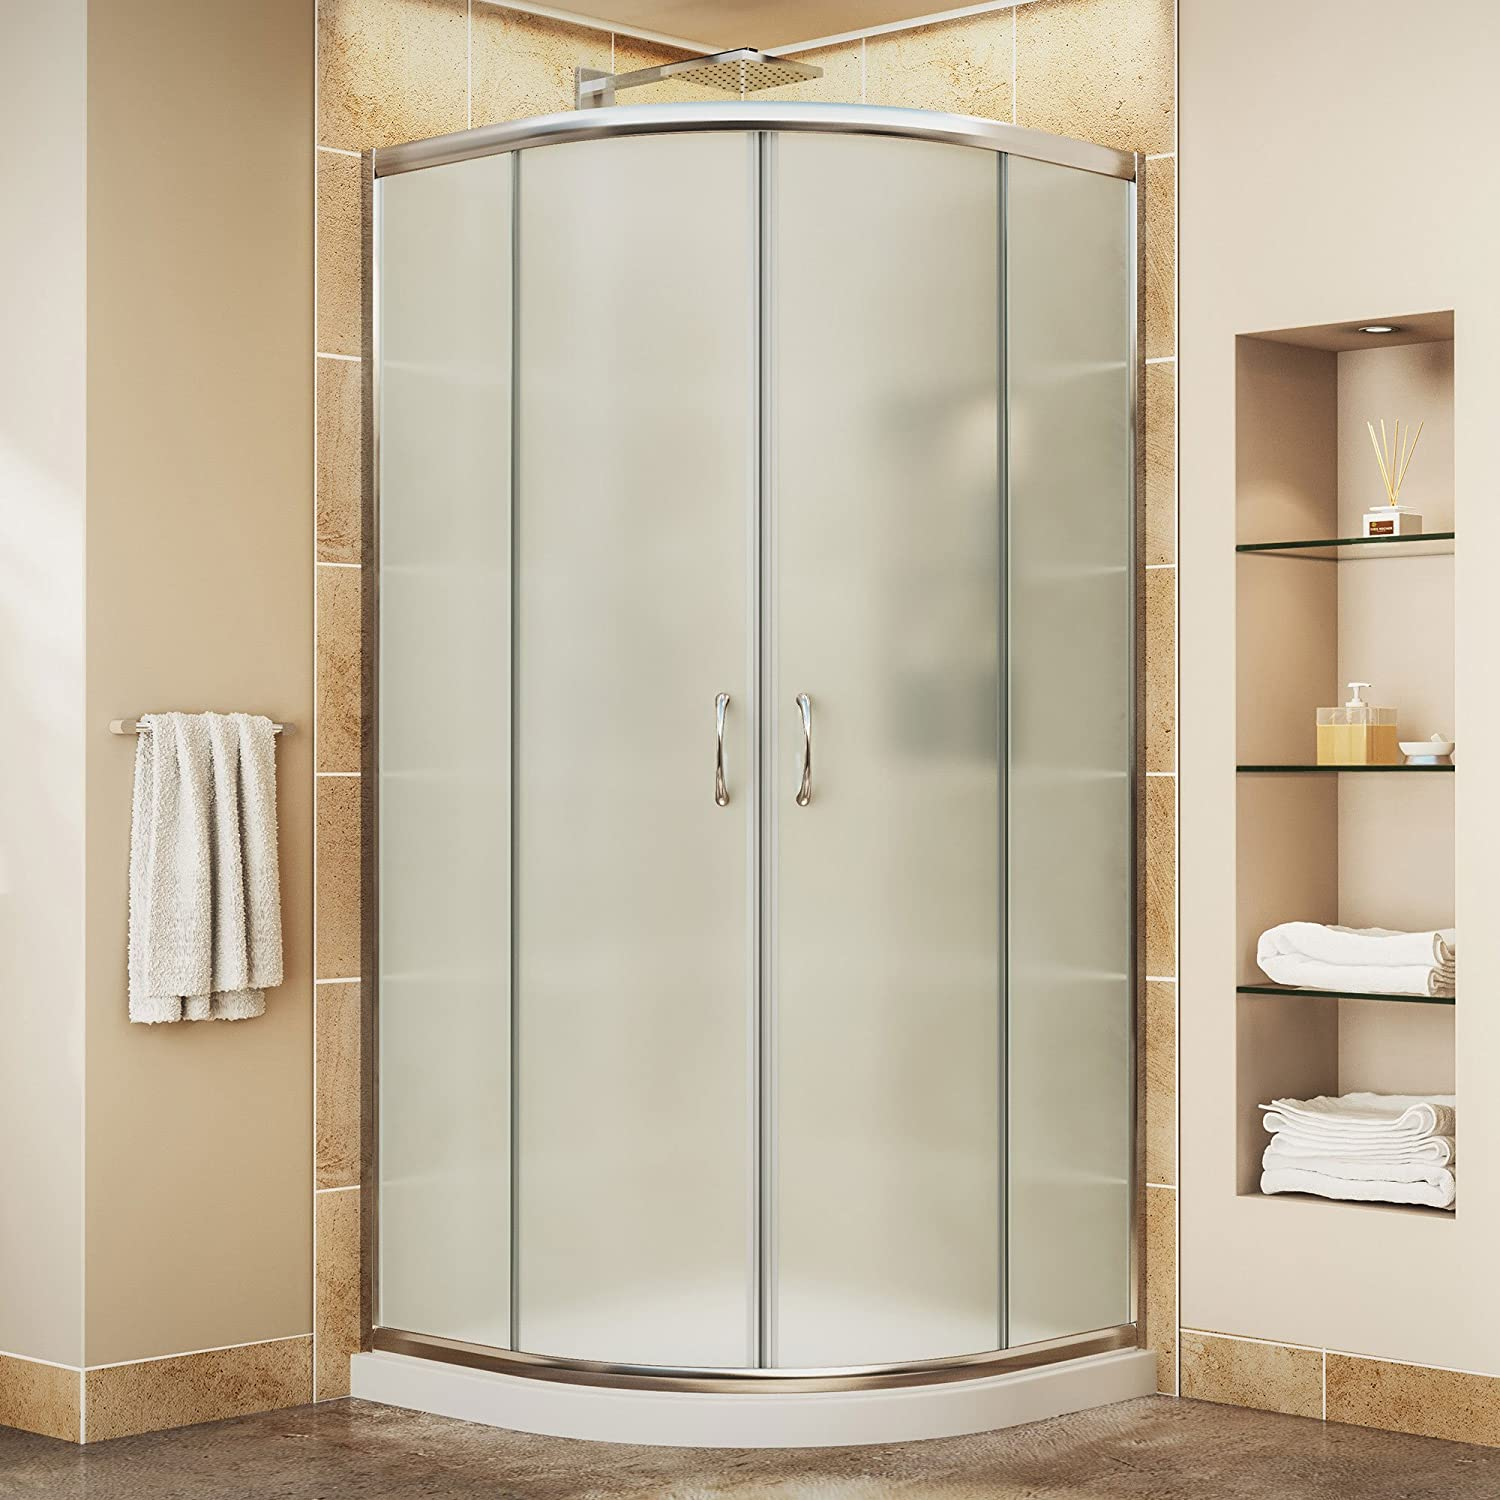 High Quality W Kit, With Corner Sliding Shower Enclosure In Chrome And White Acrylic  Base   Shower Doors   Amazon.com